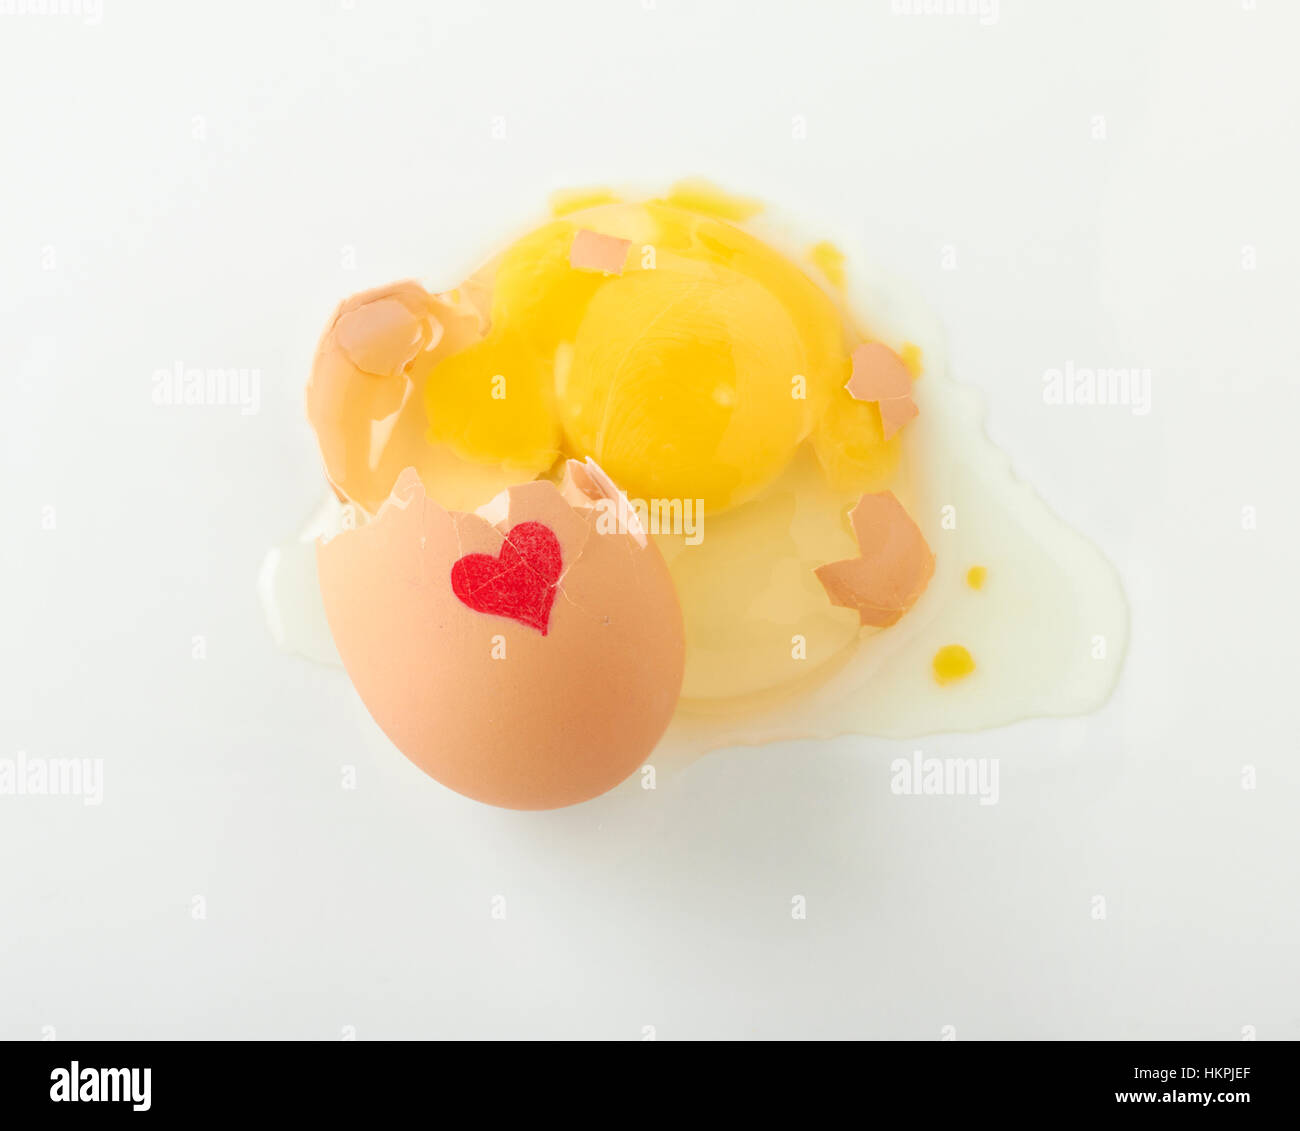 A cracked raw brown egg with a drawn red heart is spilling onto a white surface. - Stock Image